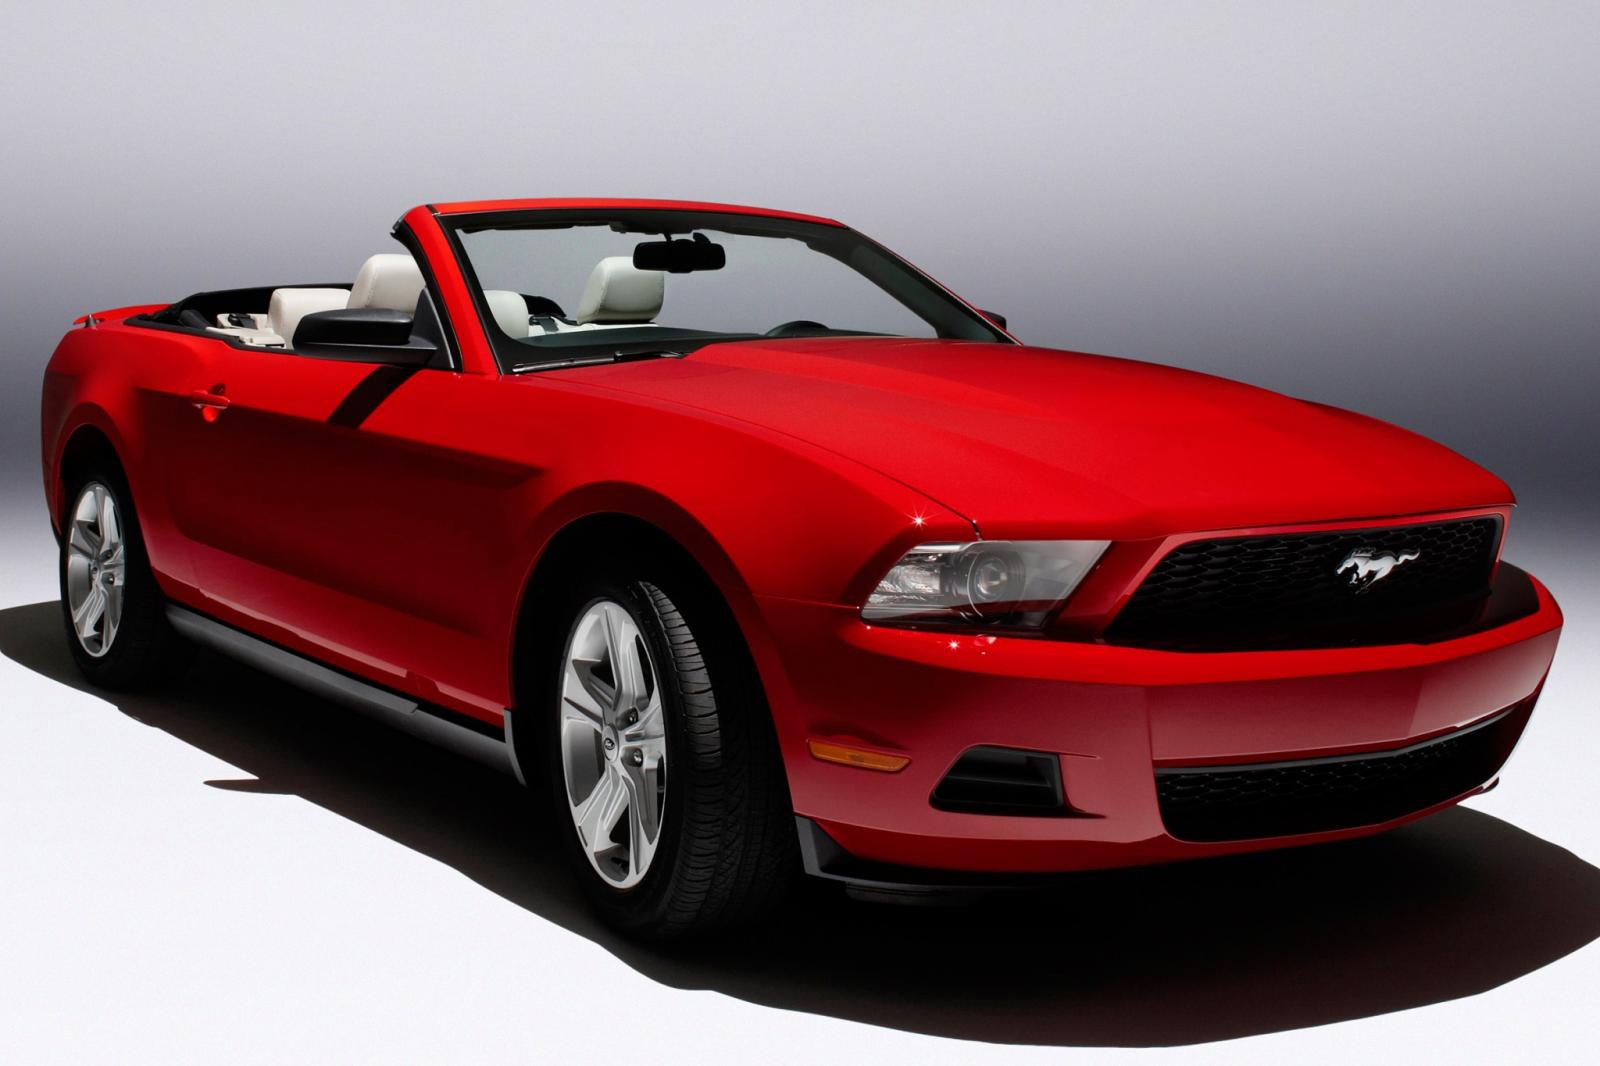 2010 ford mustang information and photos zombiedrive. Black Bedroom Furniture Sets. Home Design Ideas